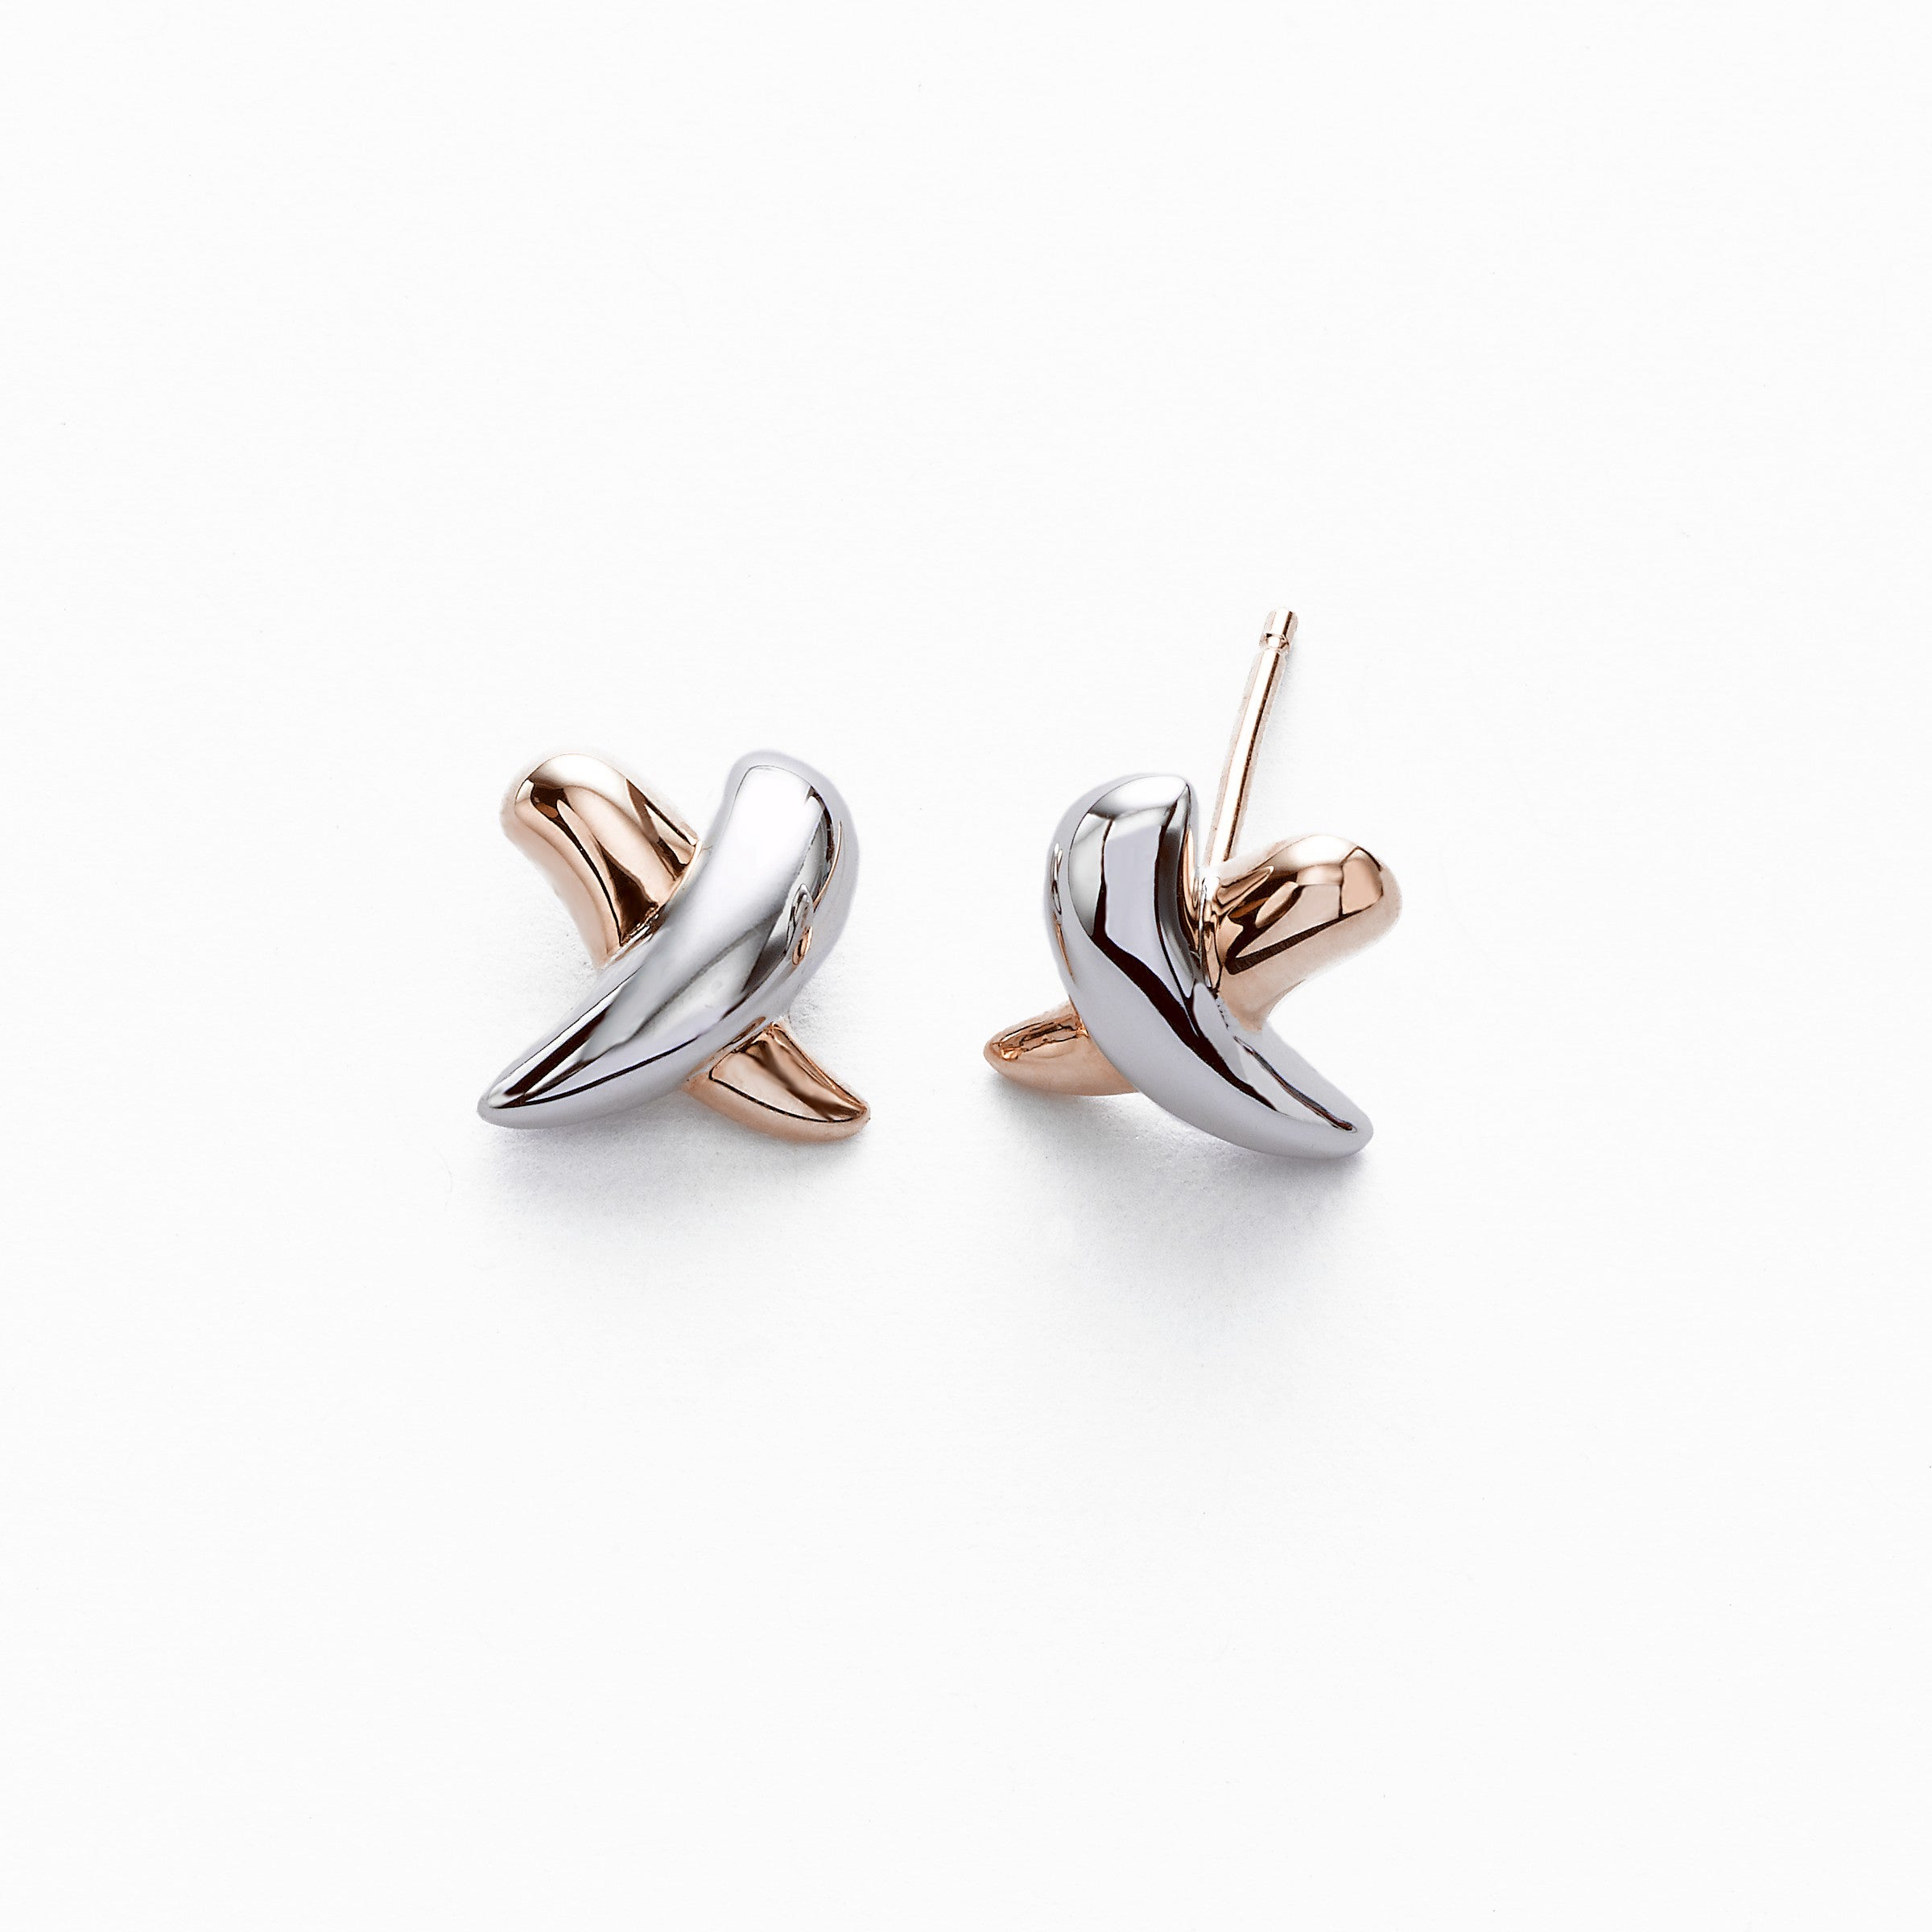 Two Tone 'X' Earrings, .40 inch, 14K Gold